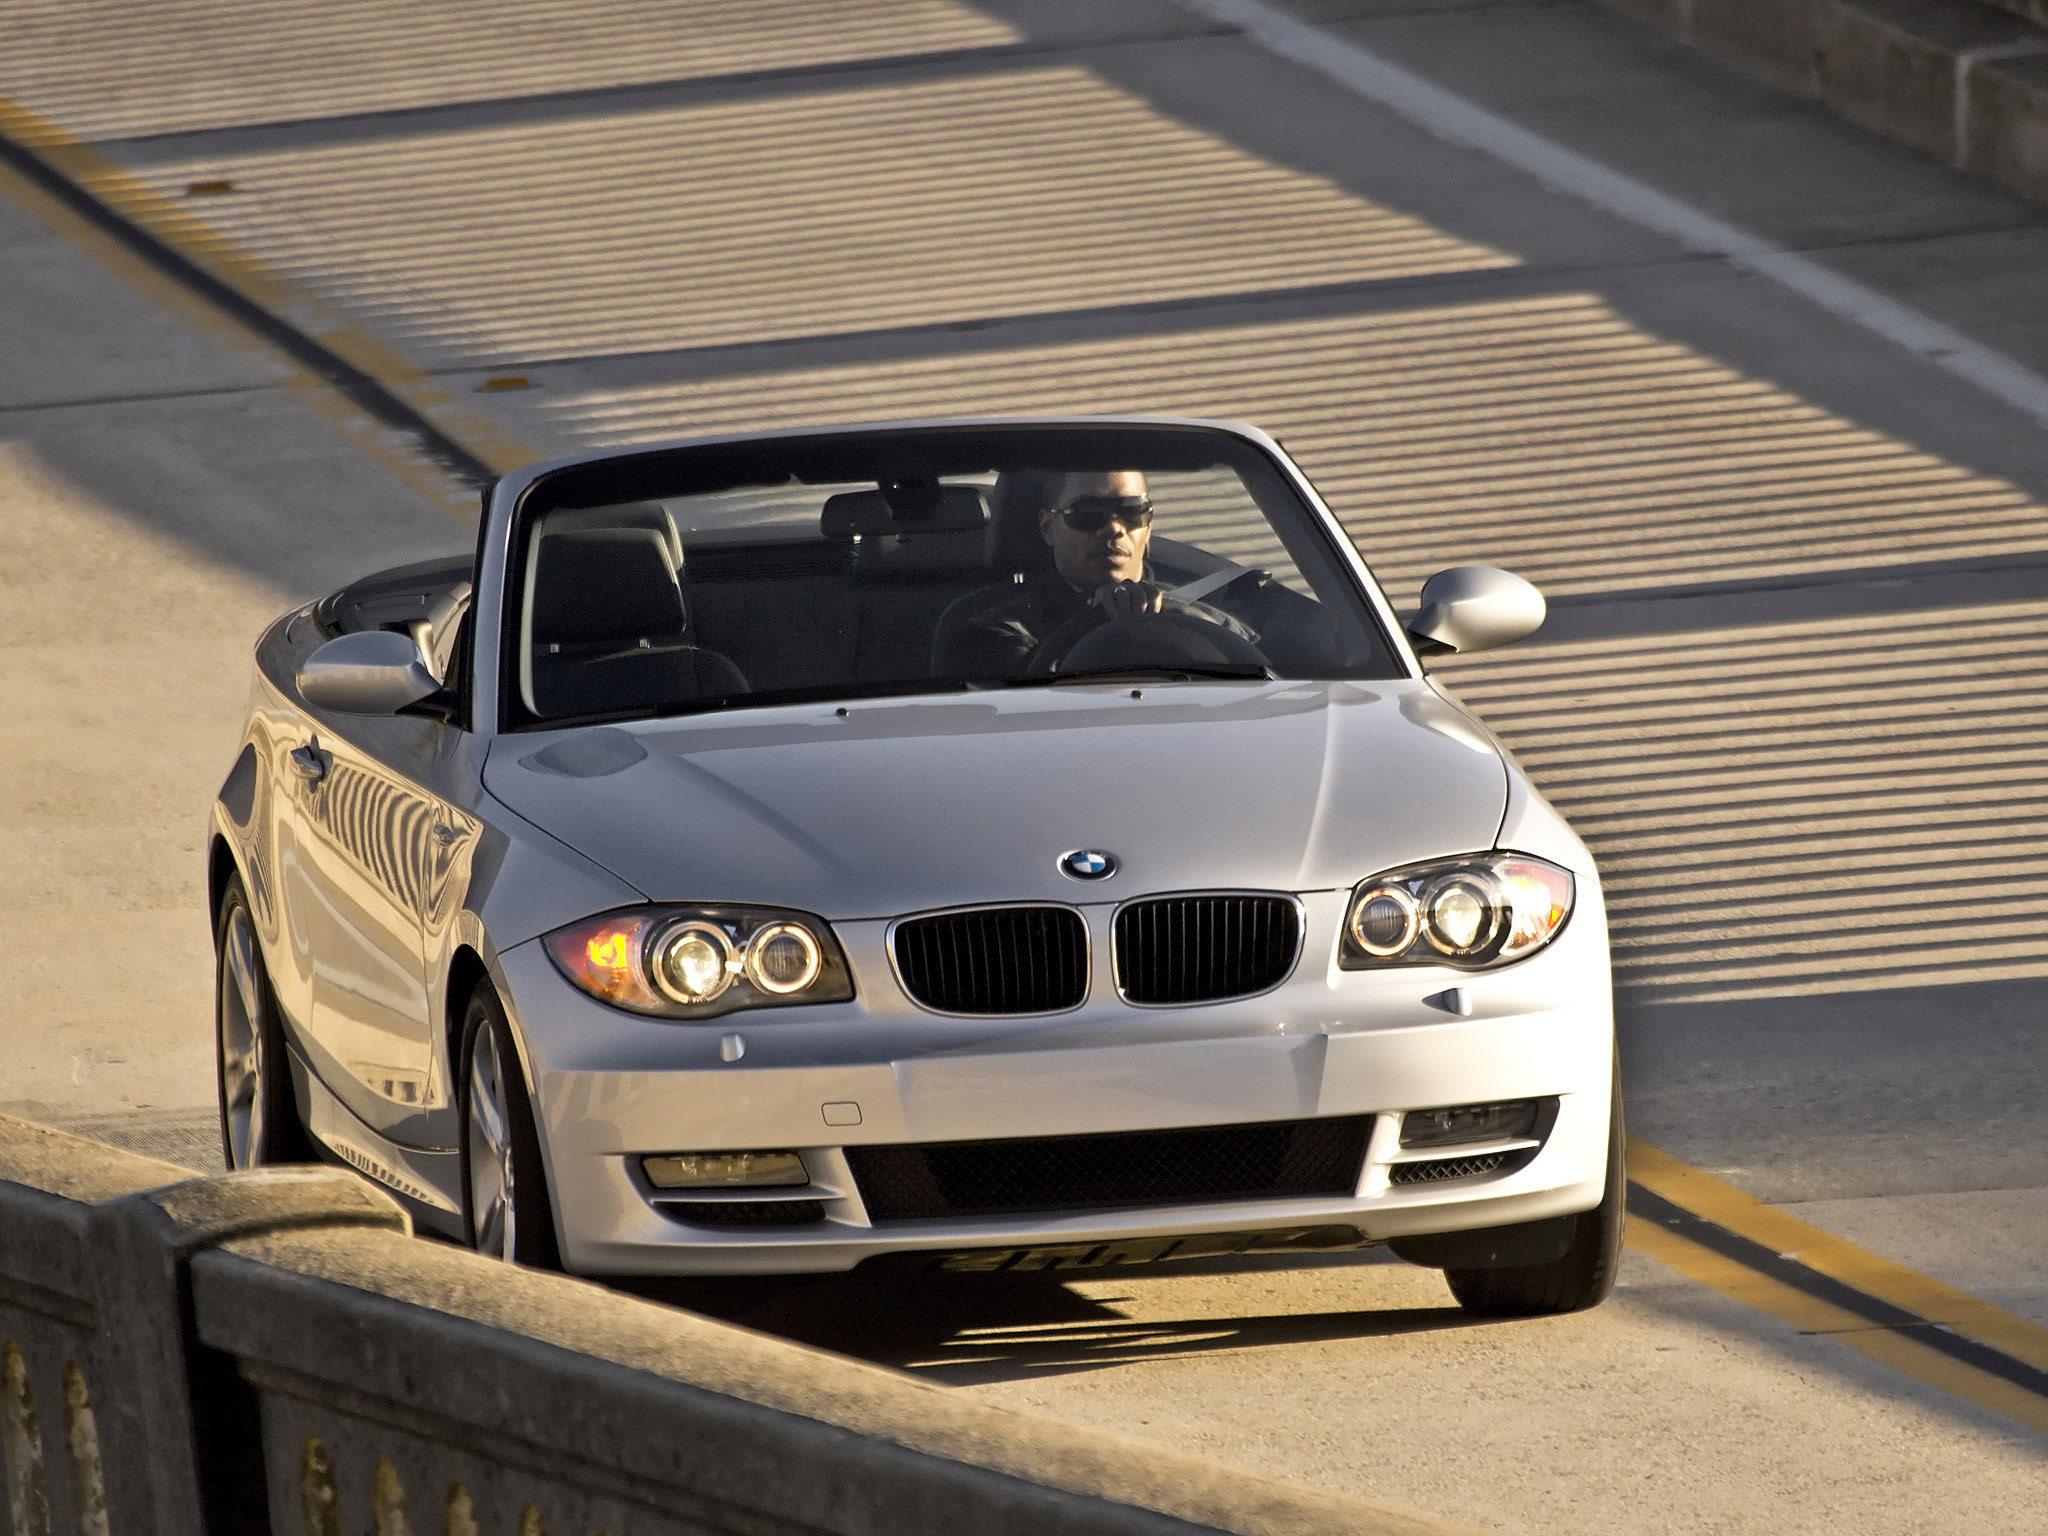 BMW 1-Series 128i Cabrio E88 USA 2008 BMW 1-Series 128i Cabrio E88 USA ...